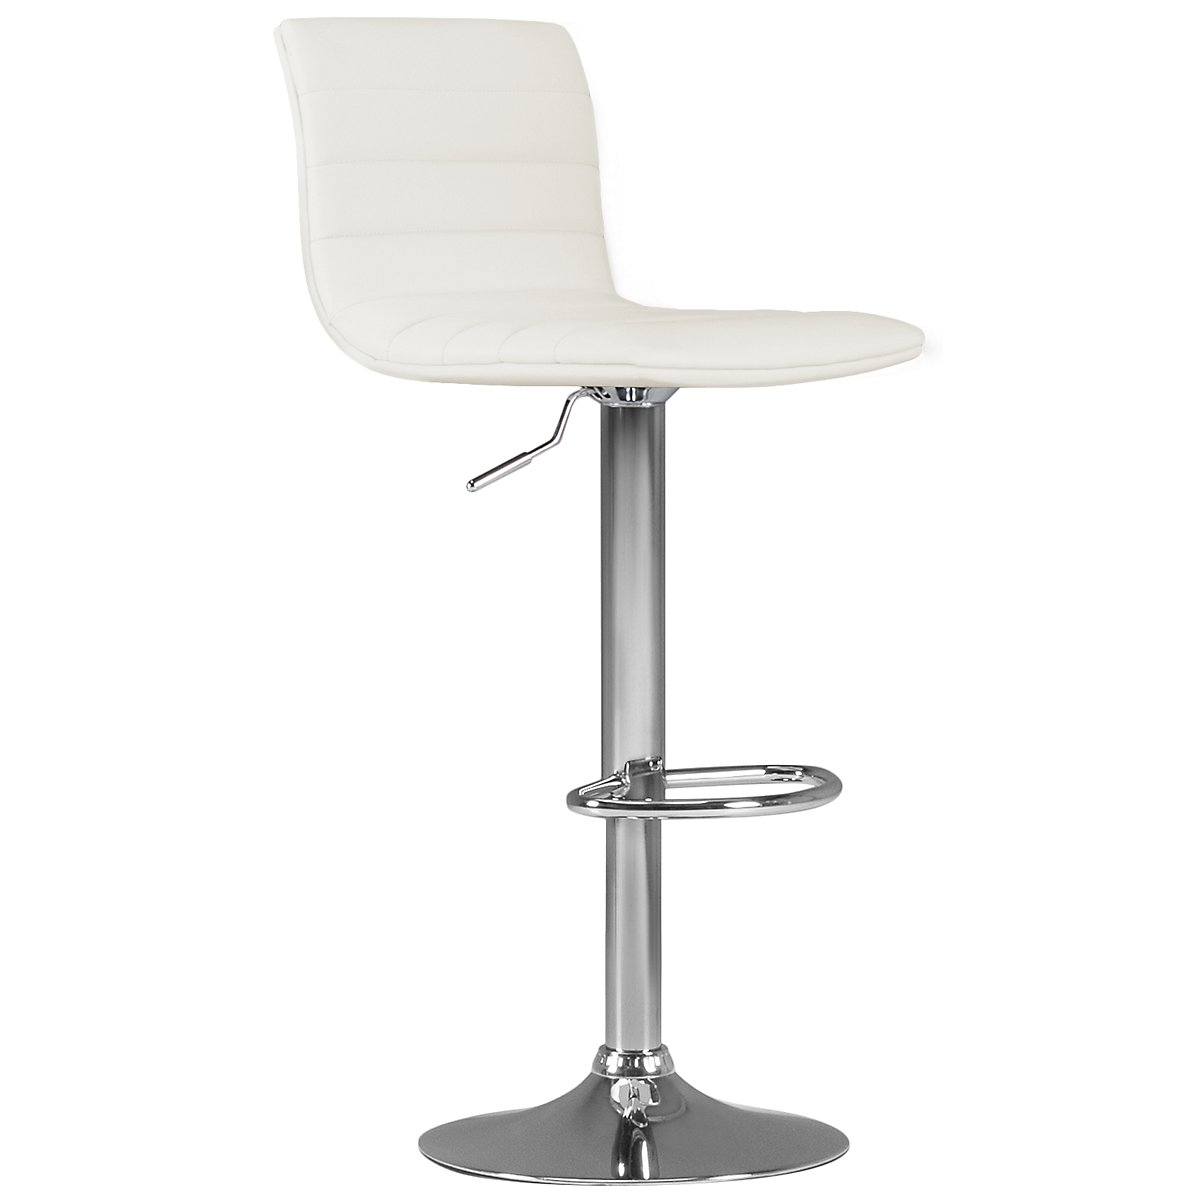 Motivo White Upholstered Adjustable Stool